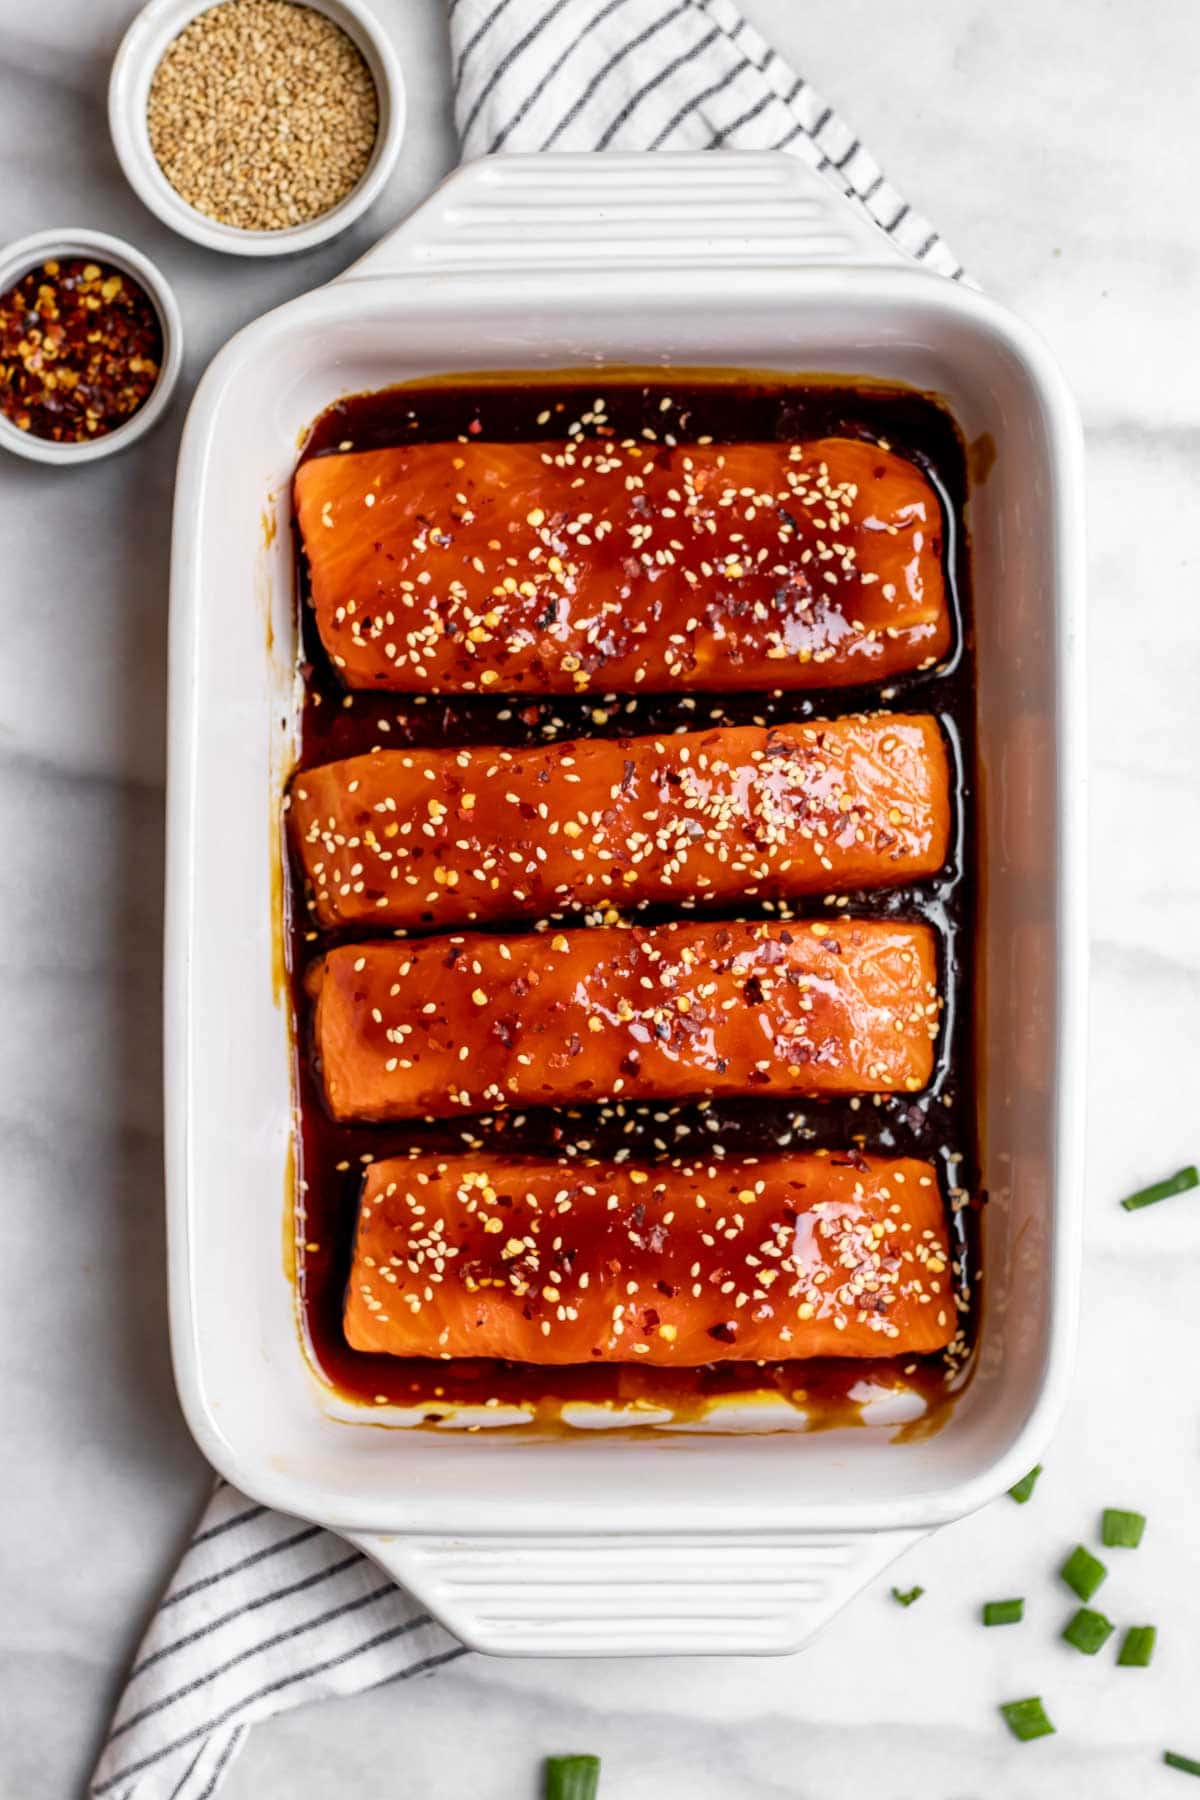 Salmon before going in the oven on a baking sheet.